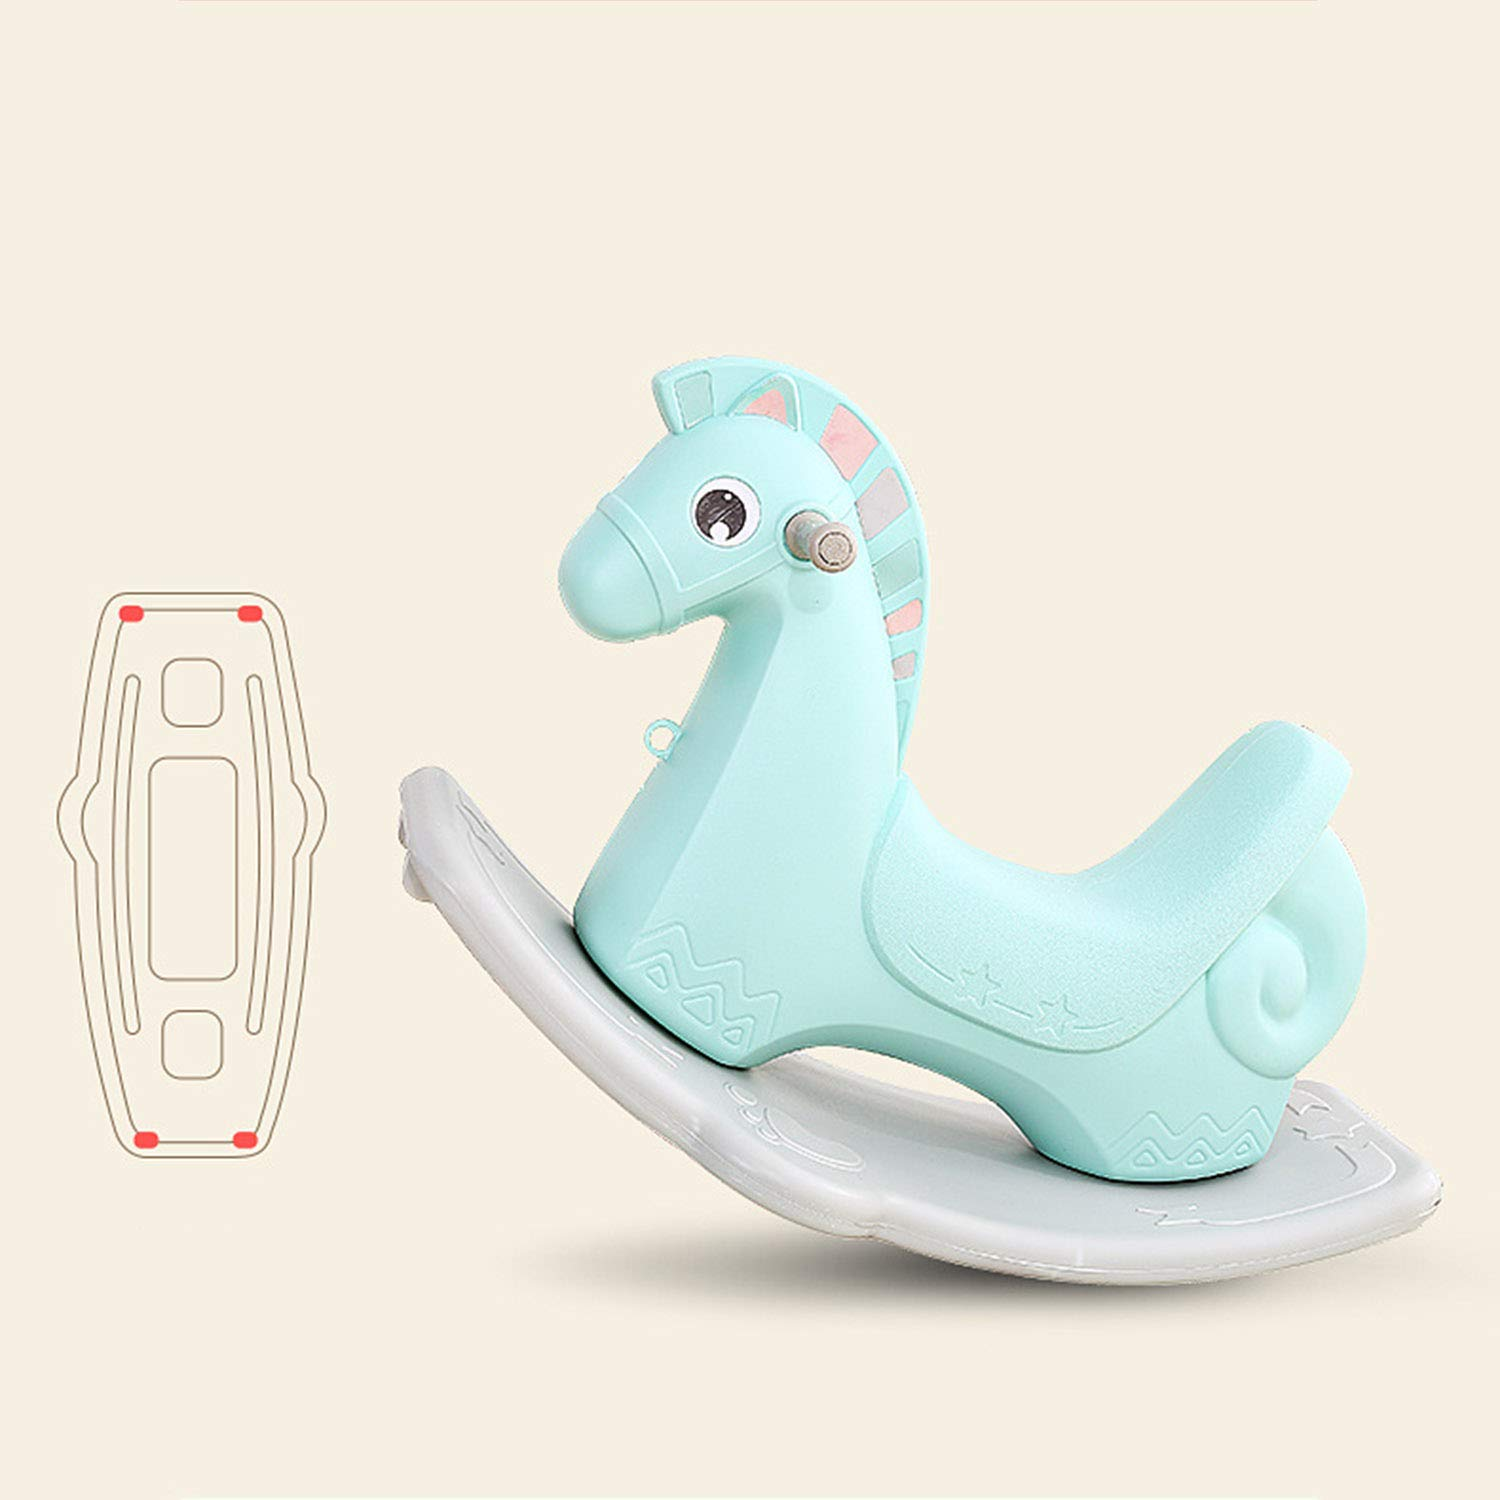 AIBAB Baby Rocking Horse Tumbler Baby Comfort Chair Thick Plastic Multifunction Nursery Boy Girl Toy Gift by AIBAB (Image #8)